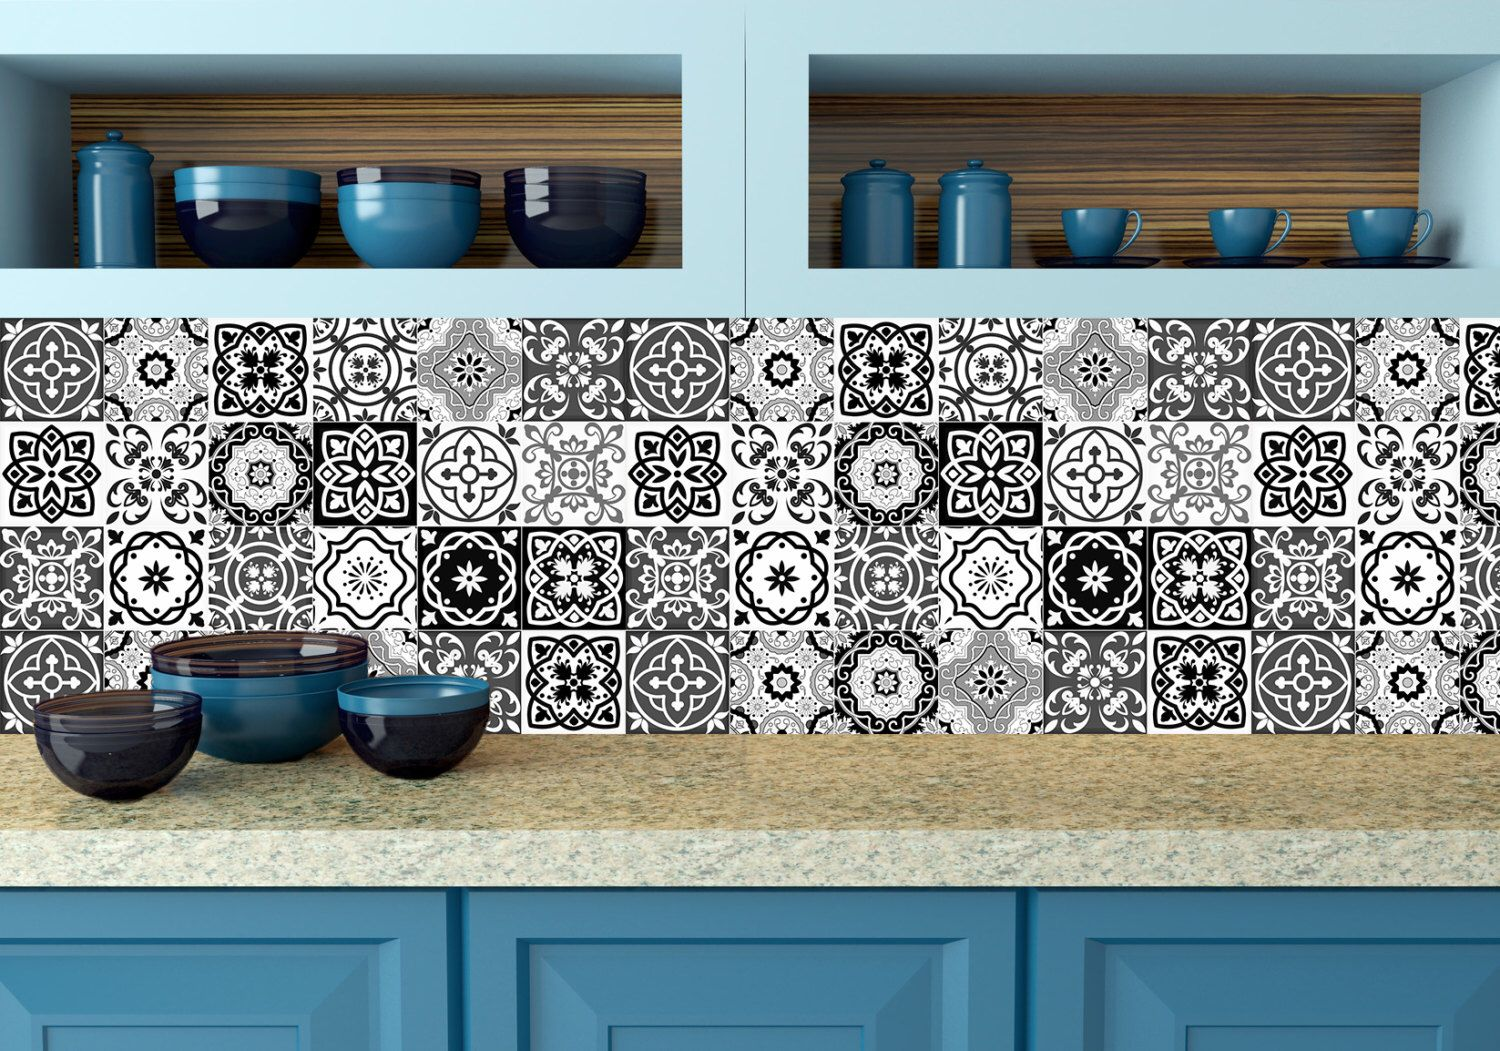 Black And White Kitchen Wall Tiles Black And White Design 24 Tile Stickers Mexican Talavera